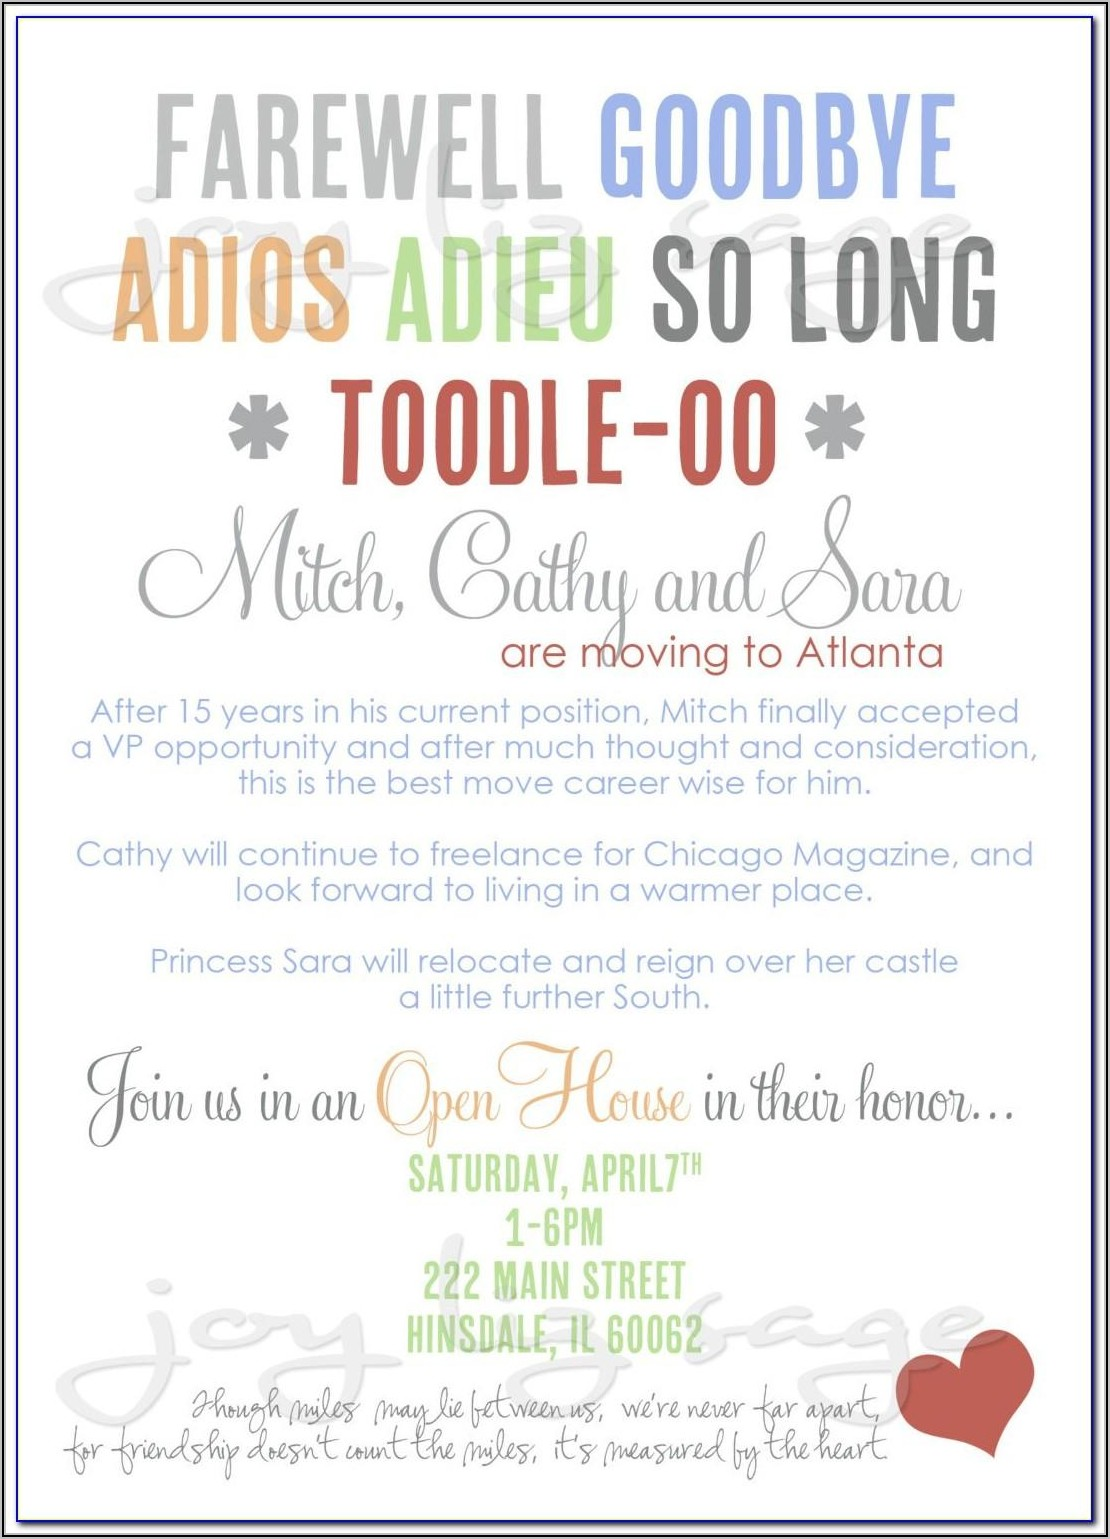 Lunch Party Invitation Email Template